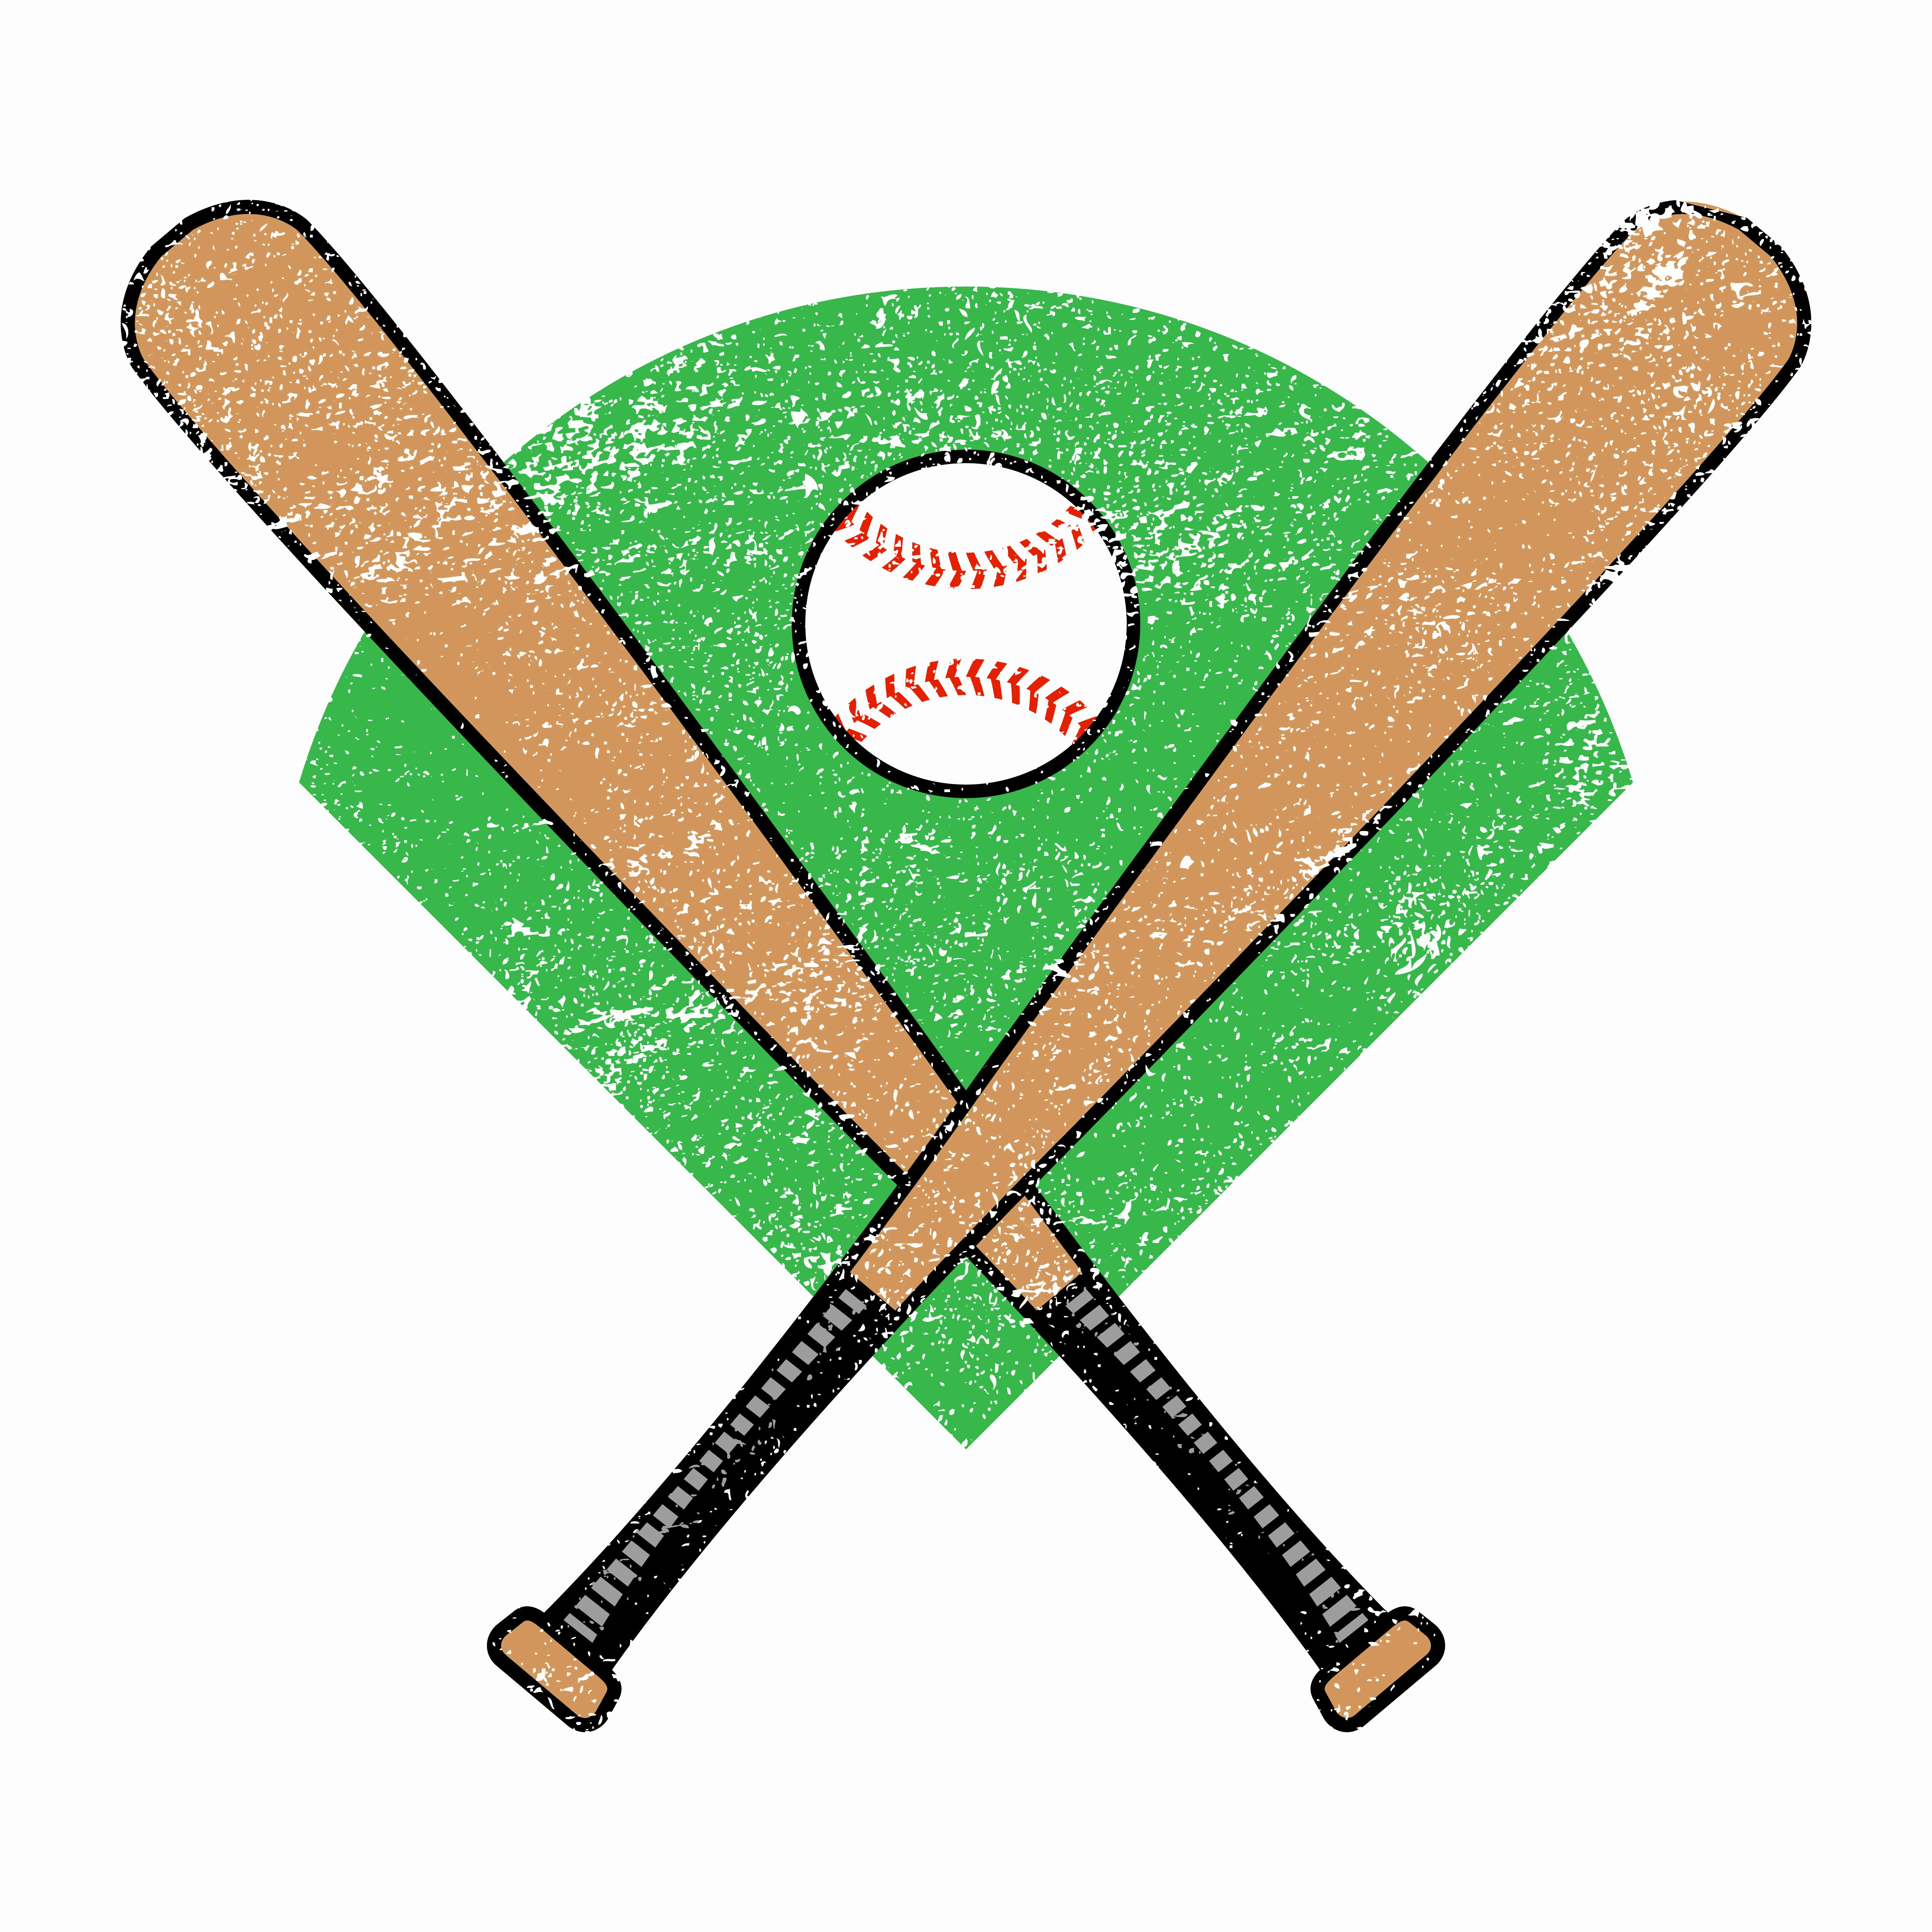 Baseball Bat Vector Free New Baseball Bat Download Free Vector Art Stock Graphics &